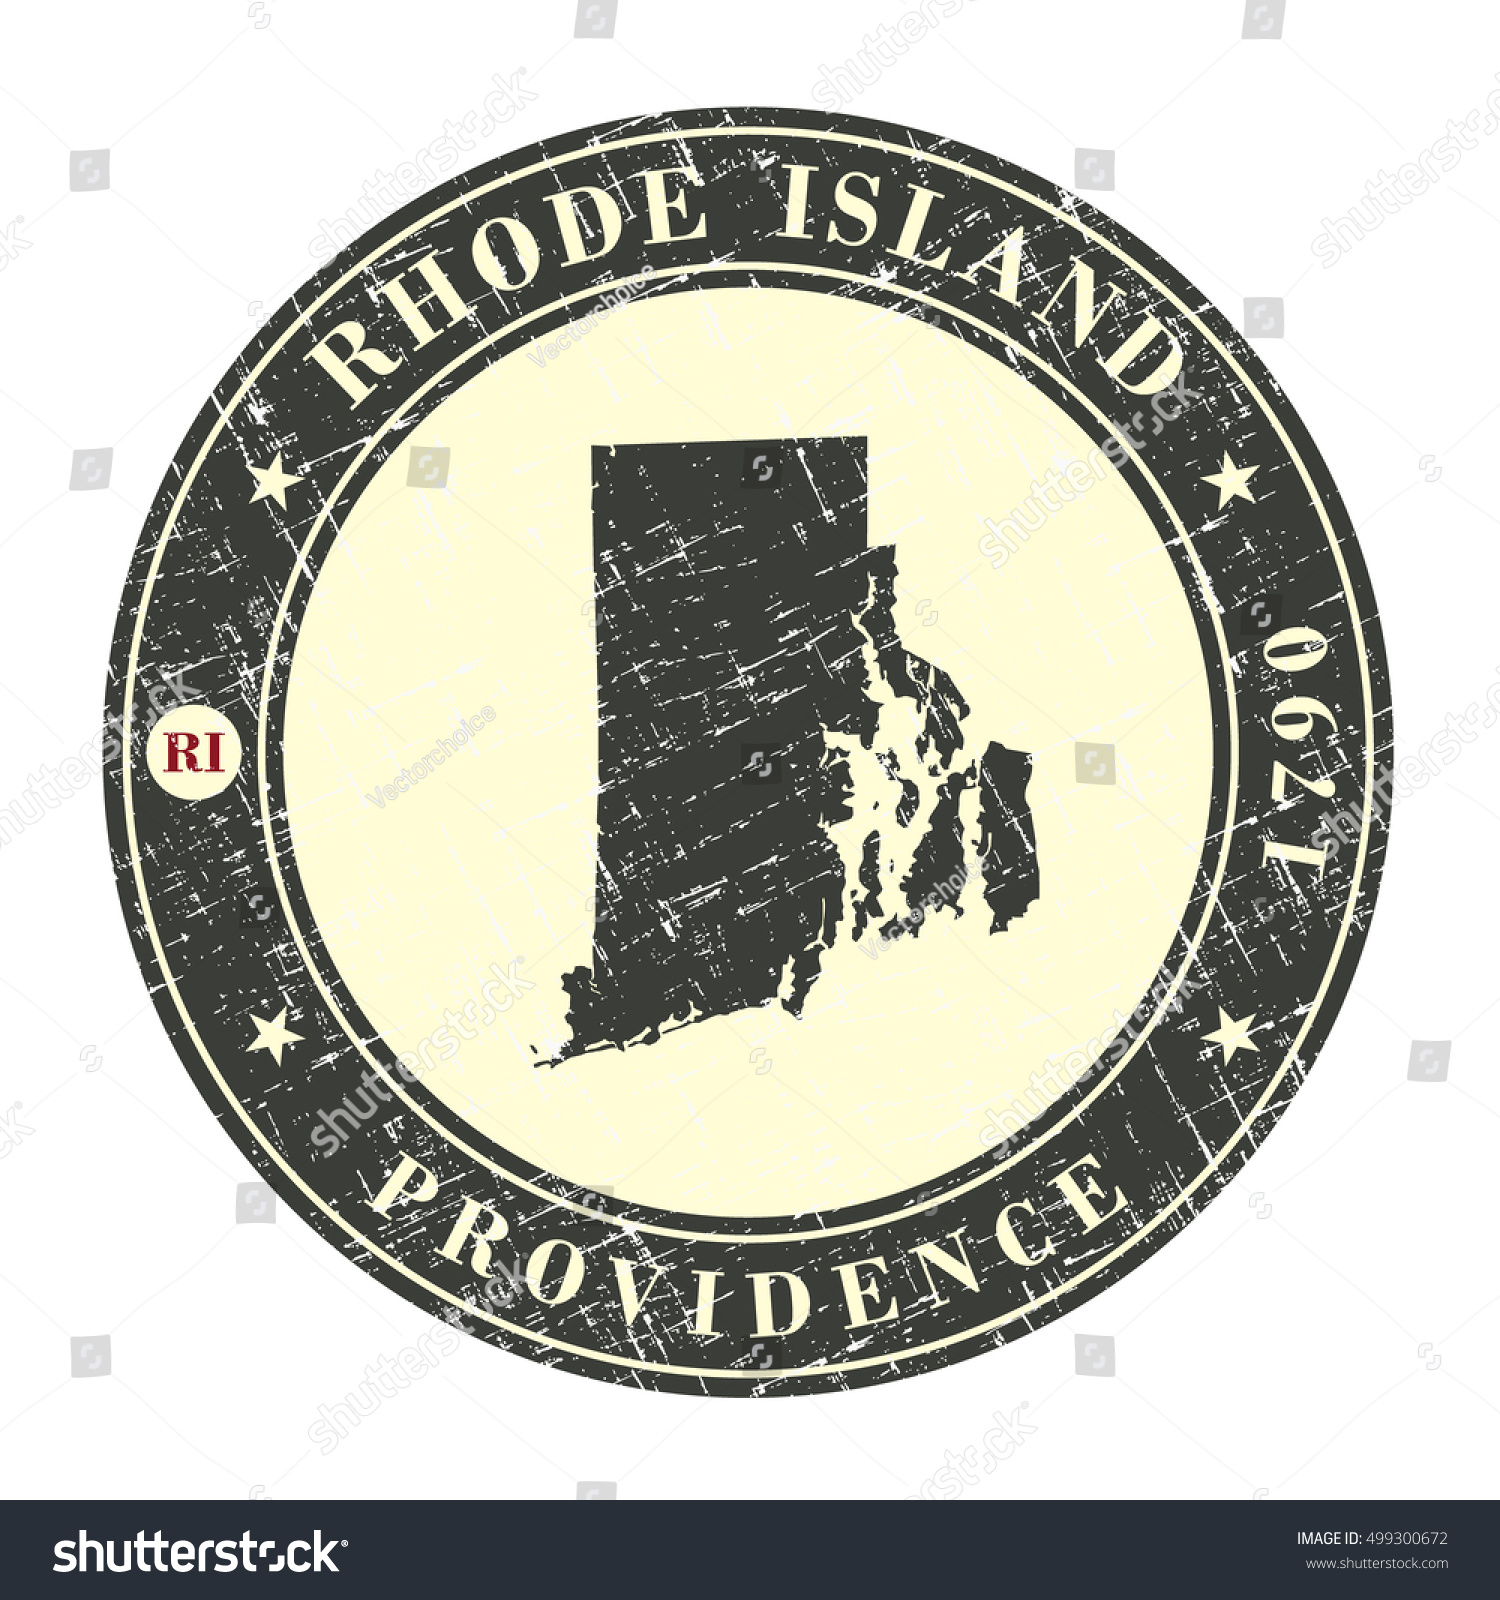 Vintage stamp map rhode island stylized stock vector 499300672 vintage stamp with map of rhode island stylized badge with the name of the state biocorpaavc Choice Image